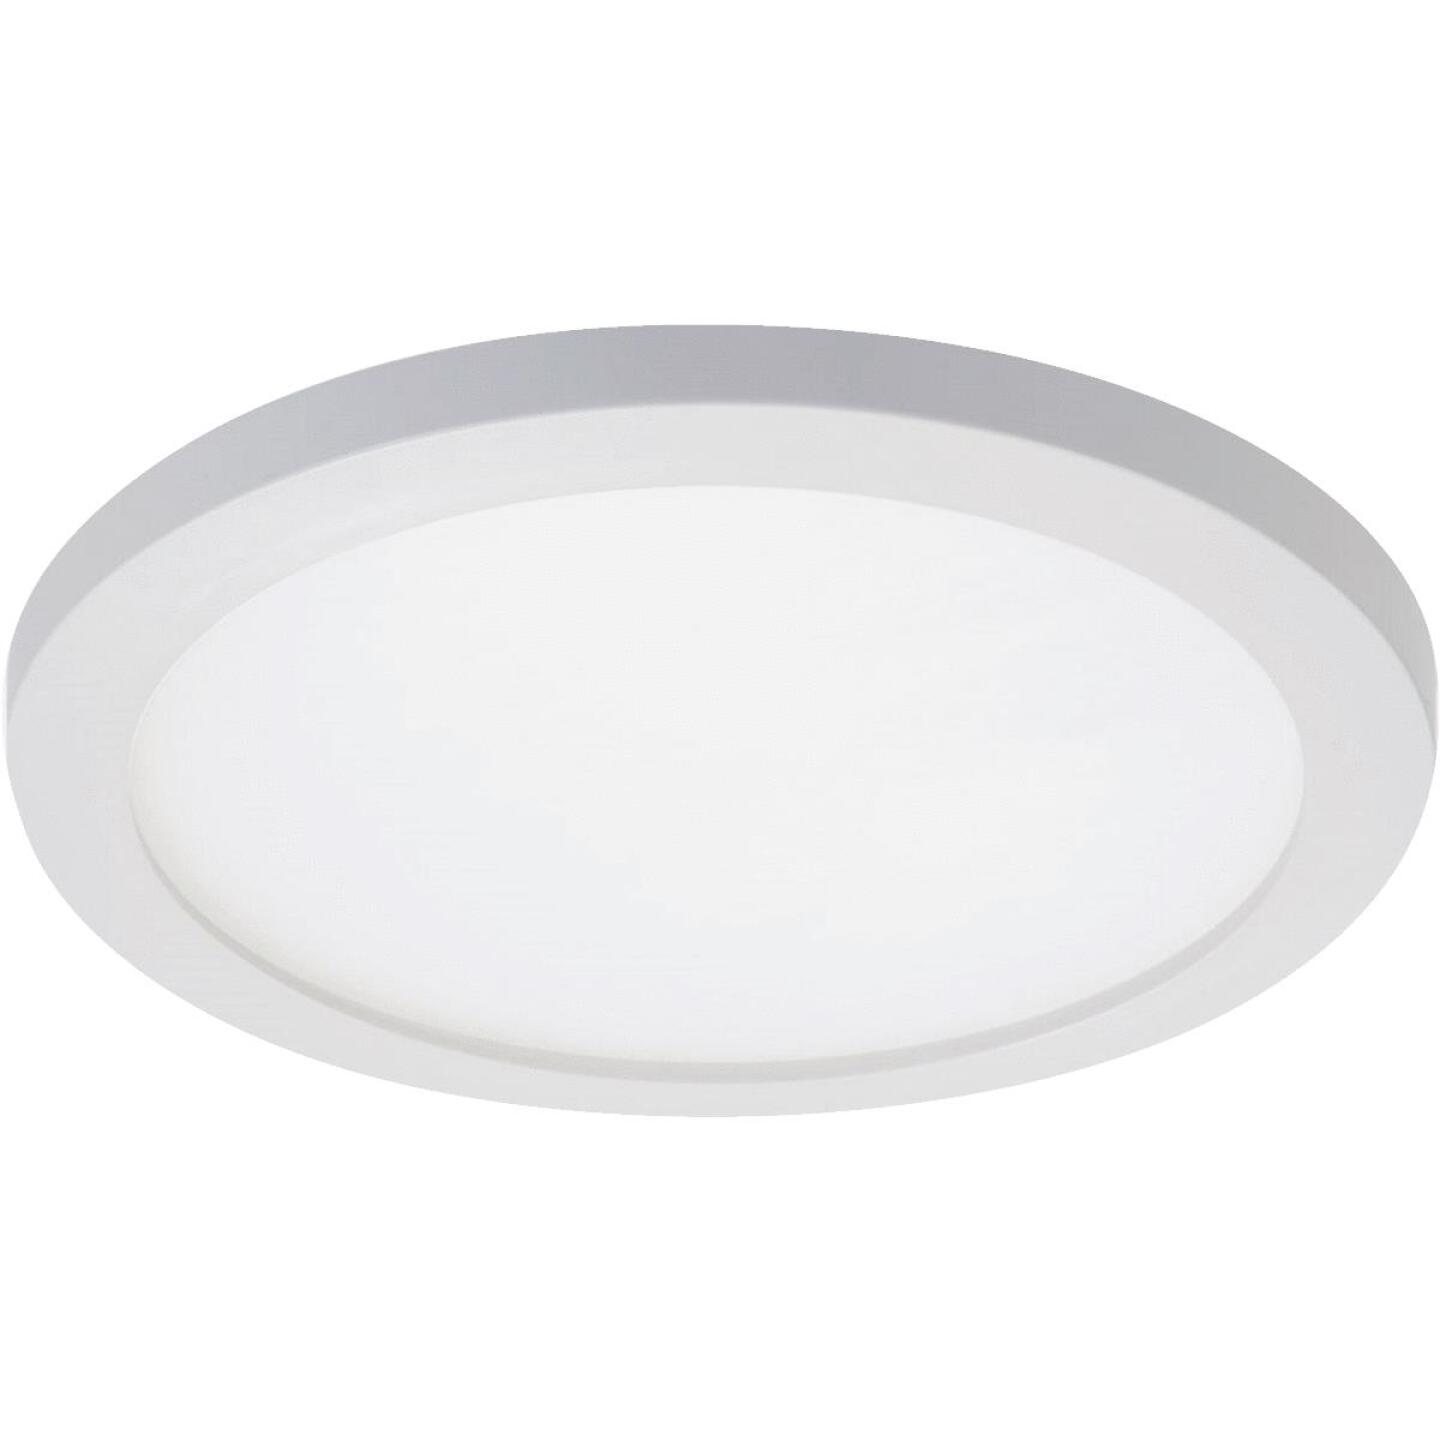 Halo 4 In. Round Retrofit IC/Non-IC Rated White LED Flush Mount LED Recessed Light Kit Image 1